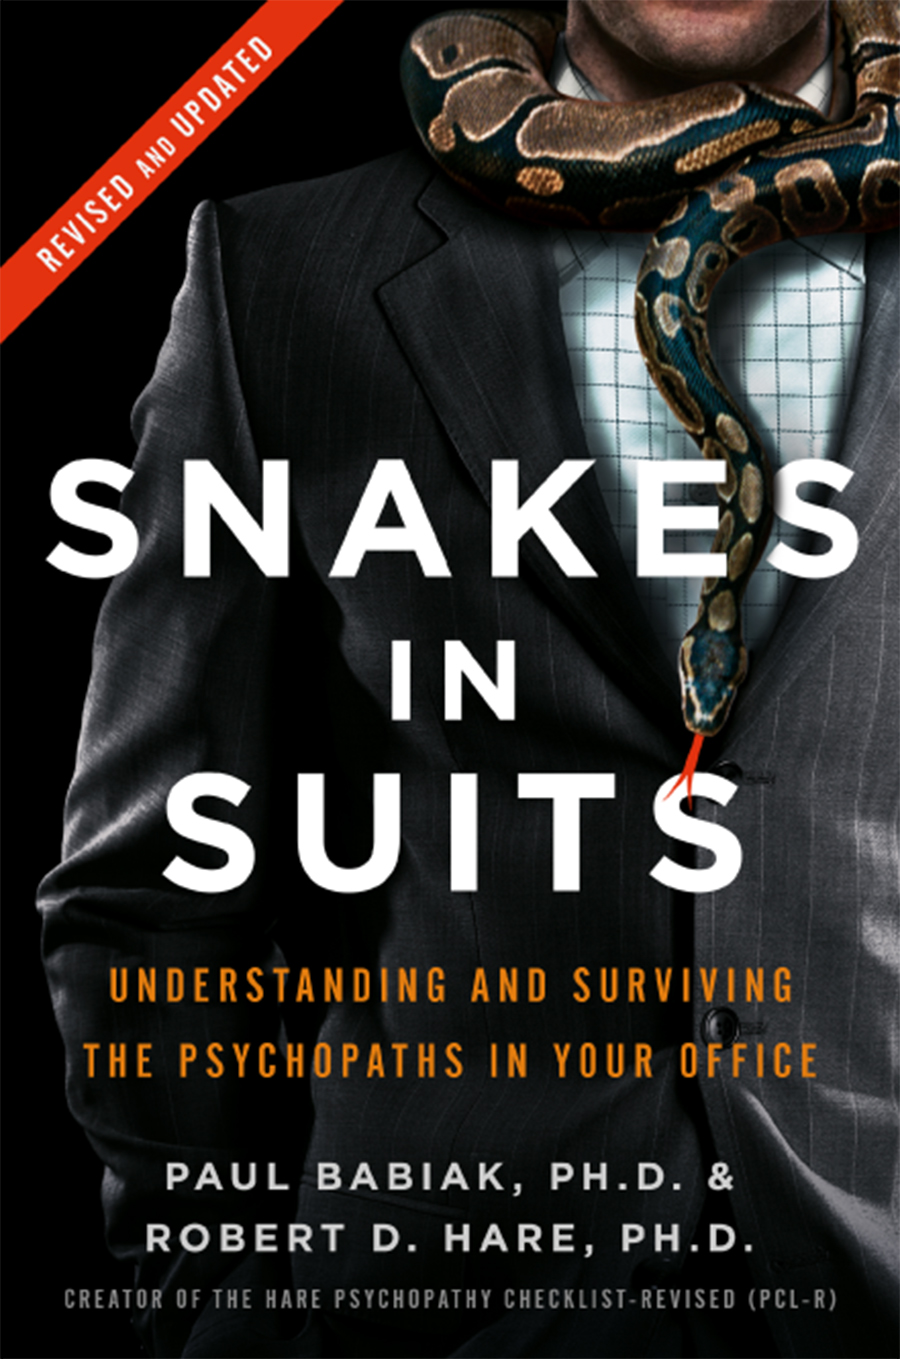 Snakes in Suits: Understanding and Surviving the Psychopaths in Your Office, Revised Edition